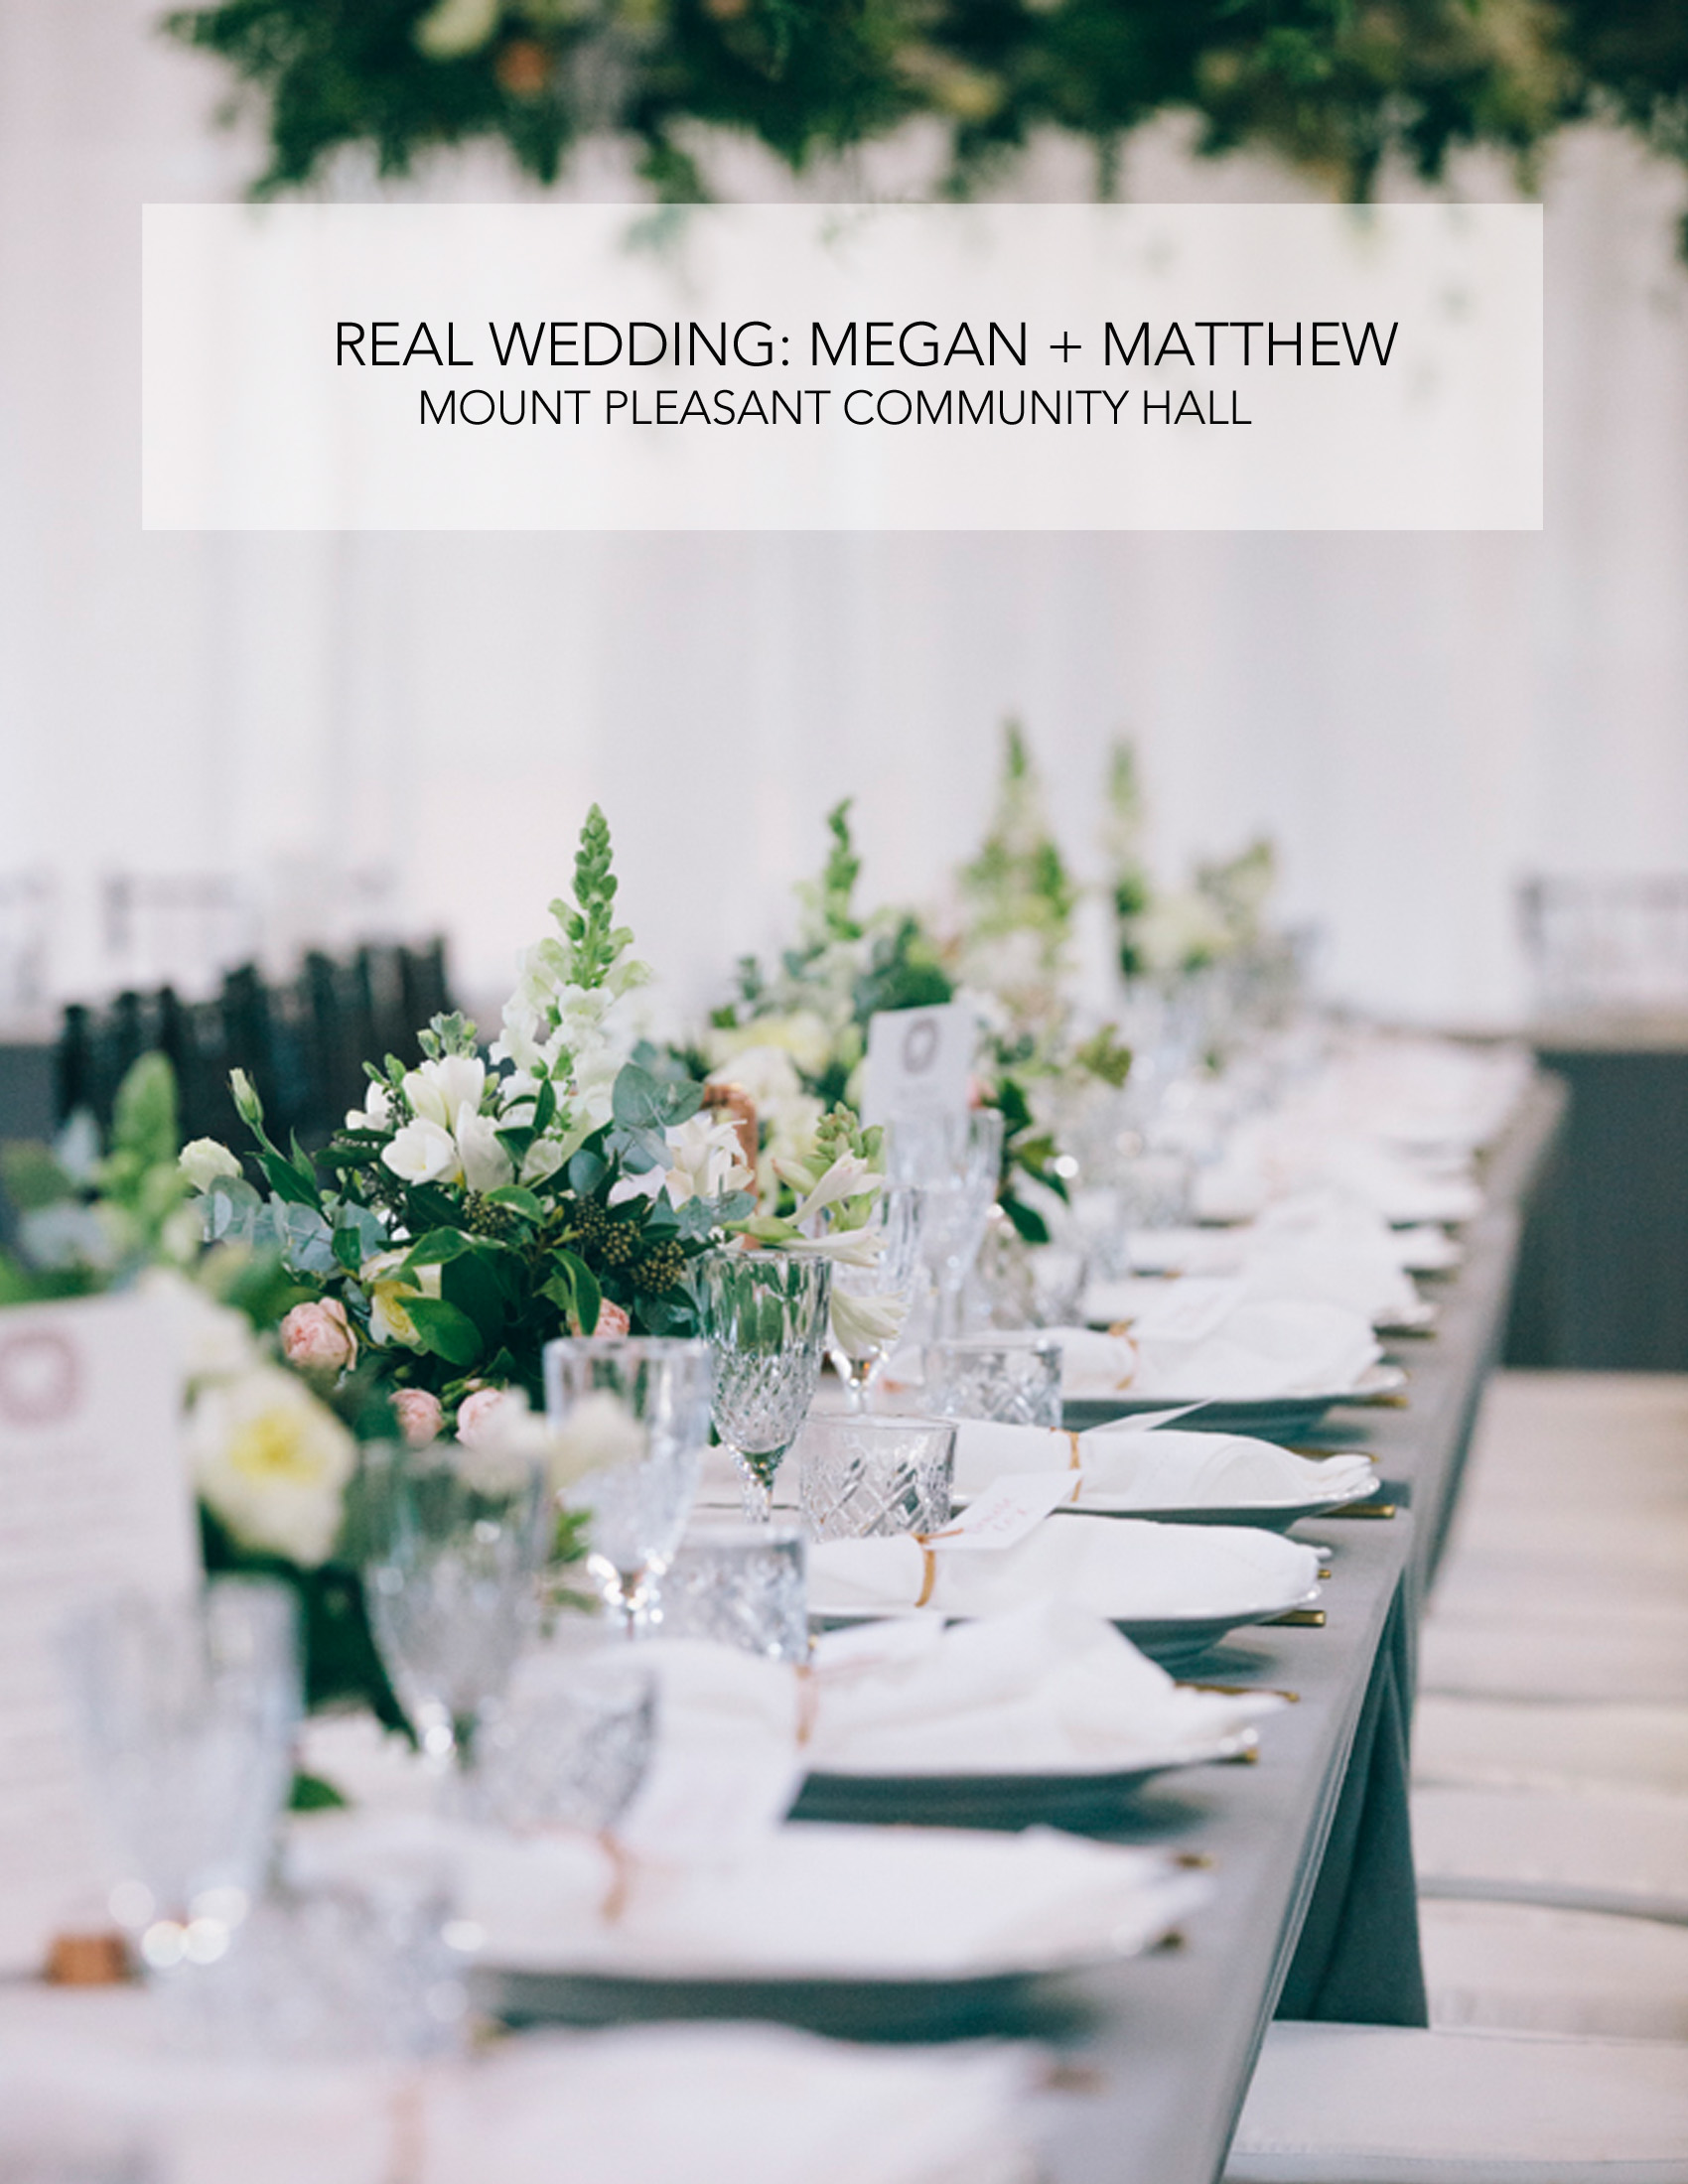 Megan and Matthews Real Wedding Styled by Little Gray Station